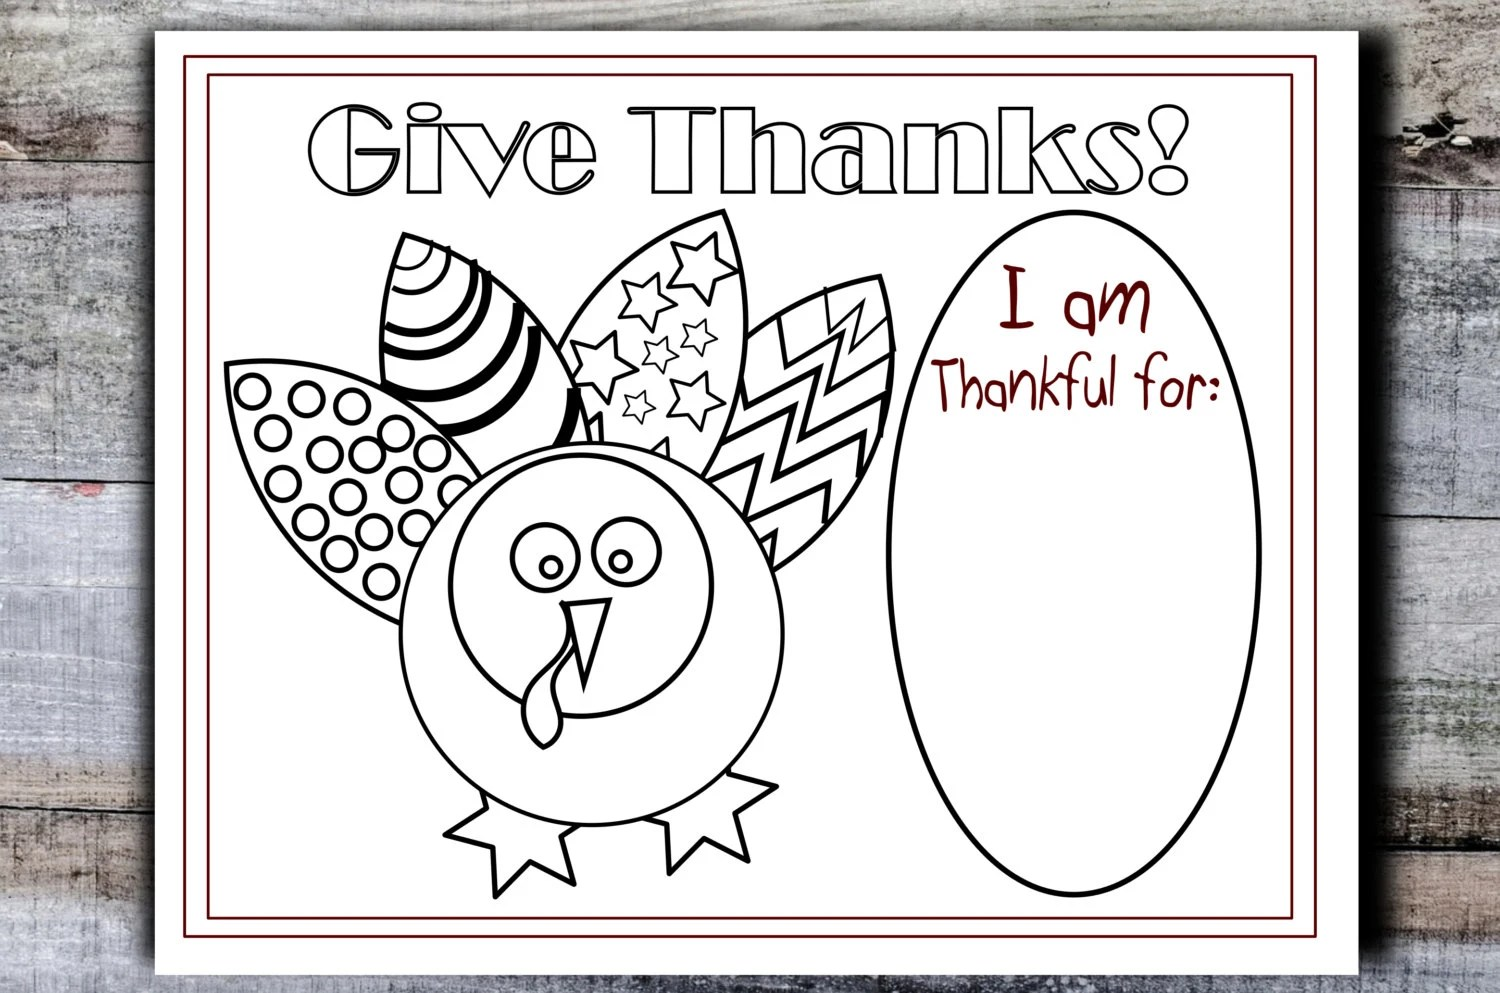 Printable Thanksgiving placemat kids table turkey coloring Etsy